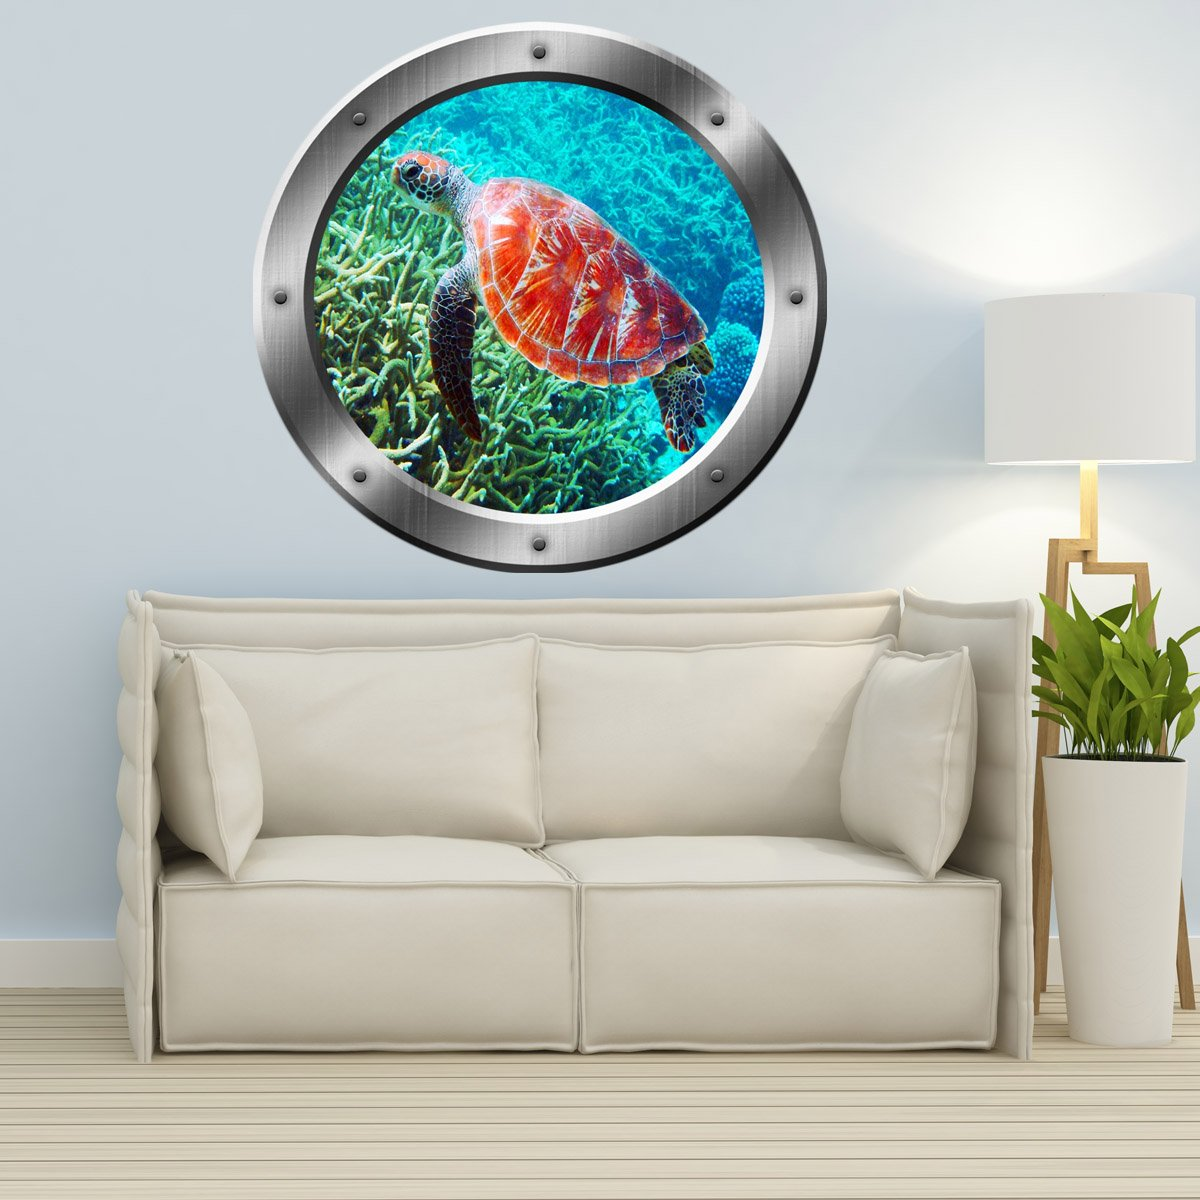 VWAQ Sea Turtle Coral Reef Porthole Peel And Stick Vinyl